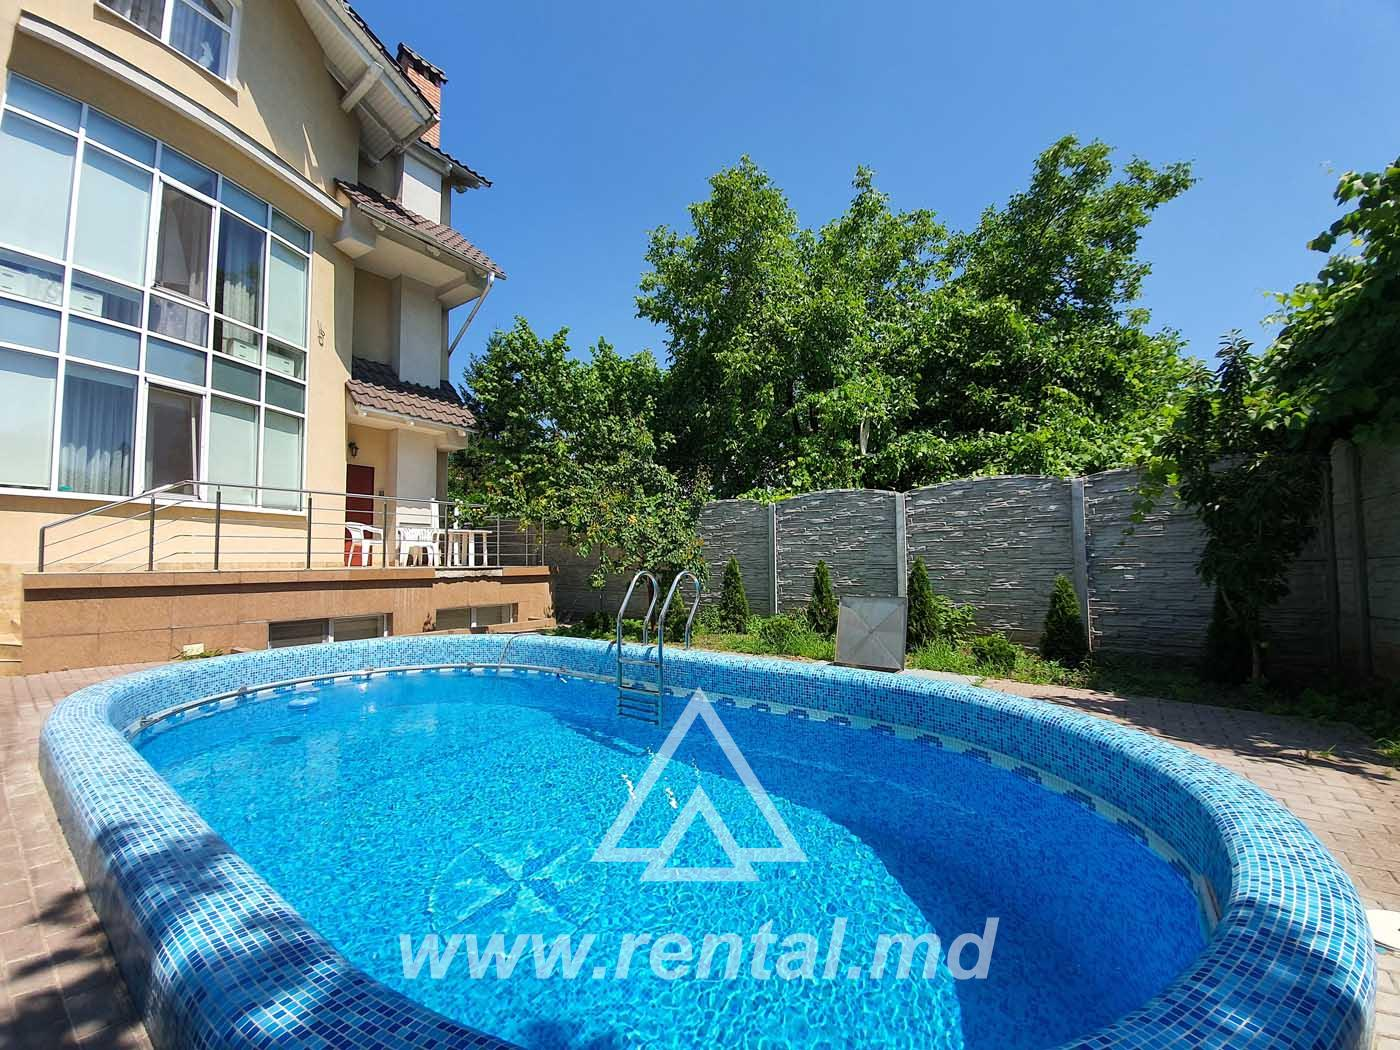 Rental house in the city center with yard and pool